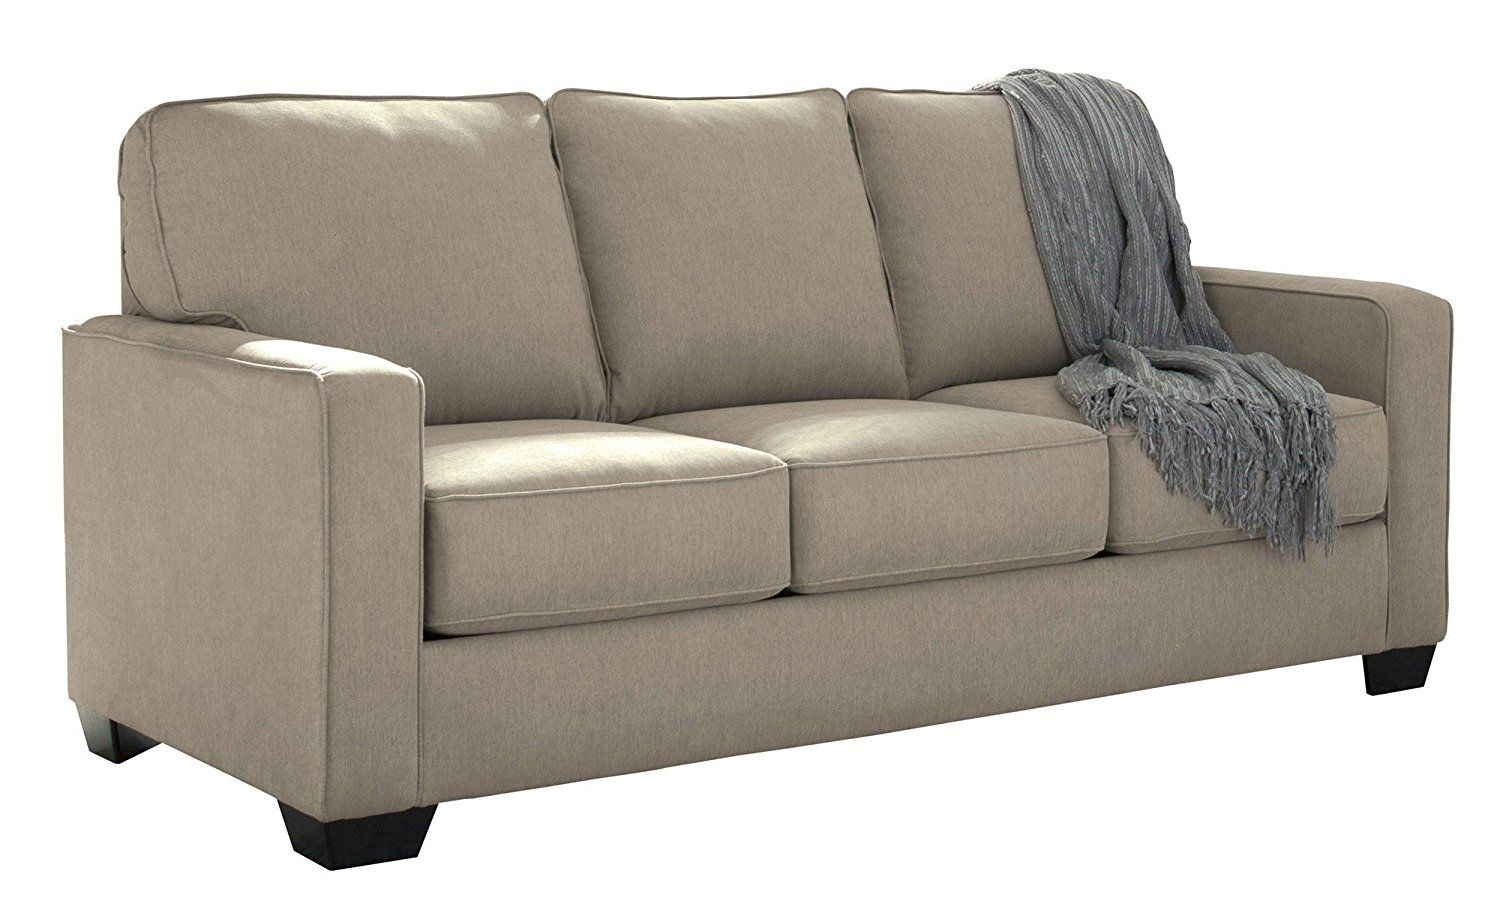 Astounding Amazon Com Ashley Zeb 3590236 76 Full Size Pull Out Sofa Cjindustries Chair Design For Home Cjindustriesco